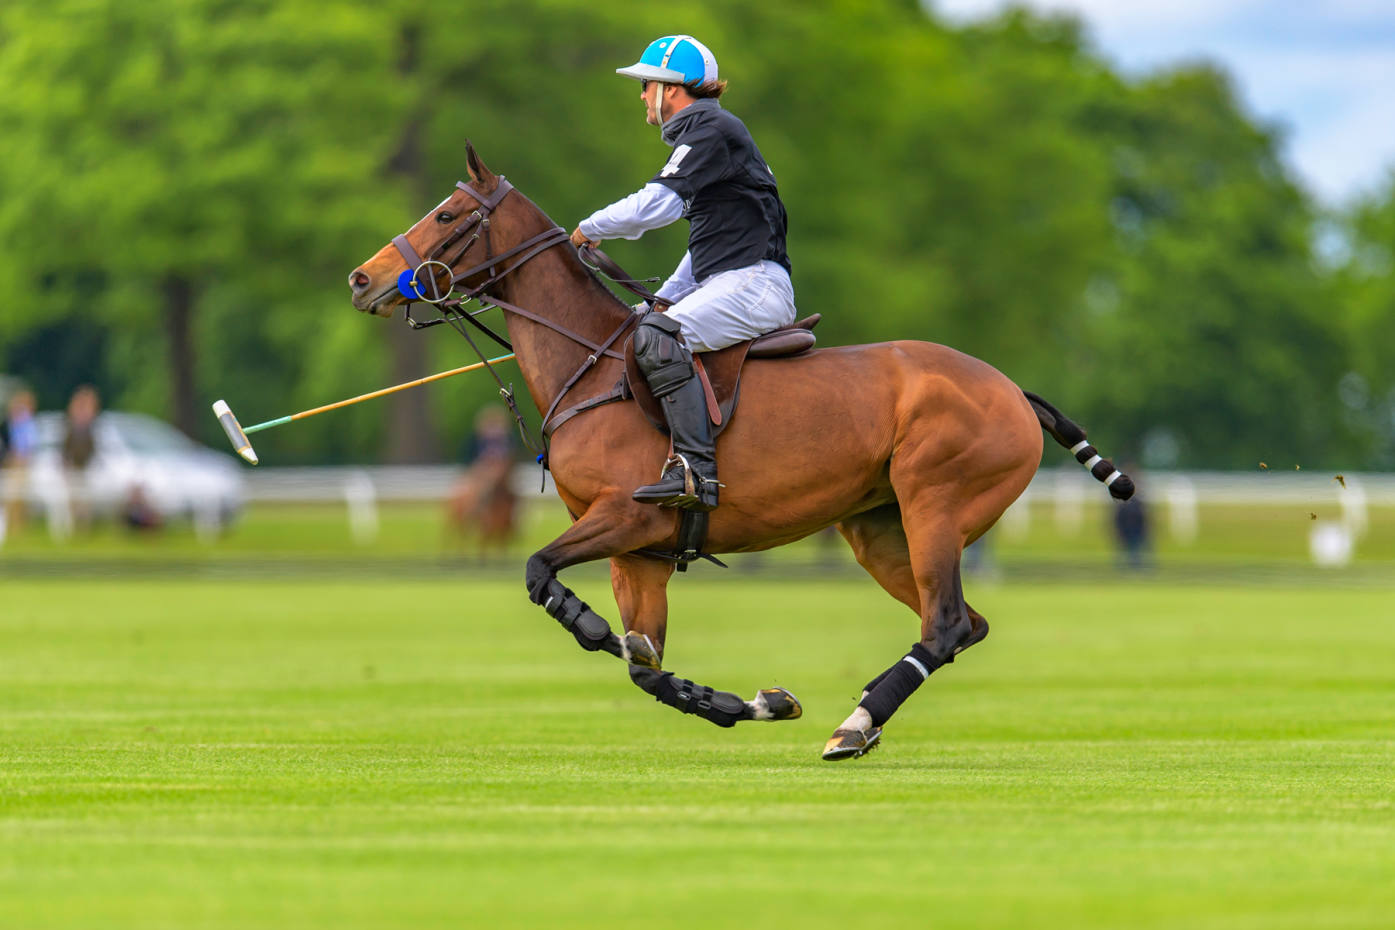 The England National Polo Team was victorious at last year's International Day